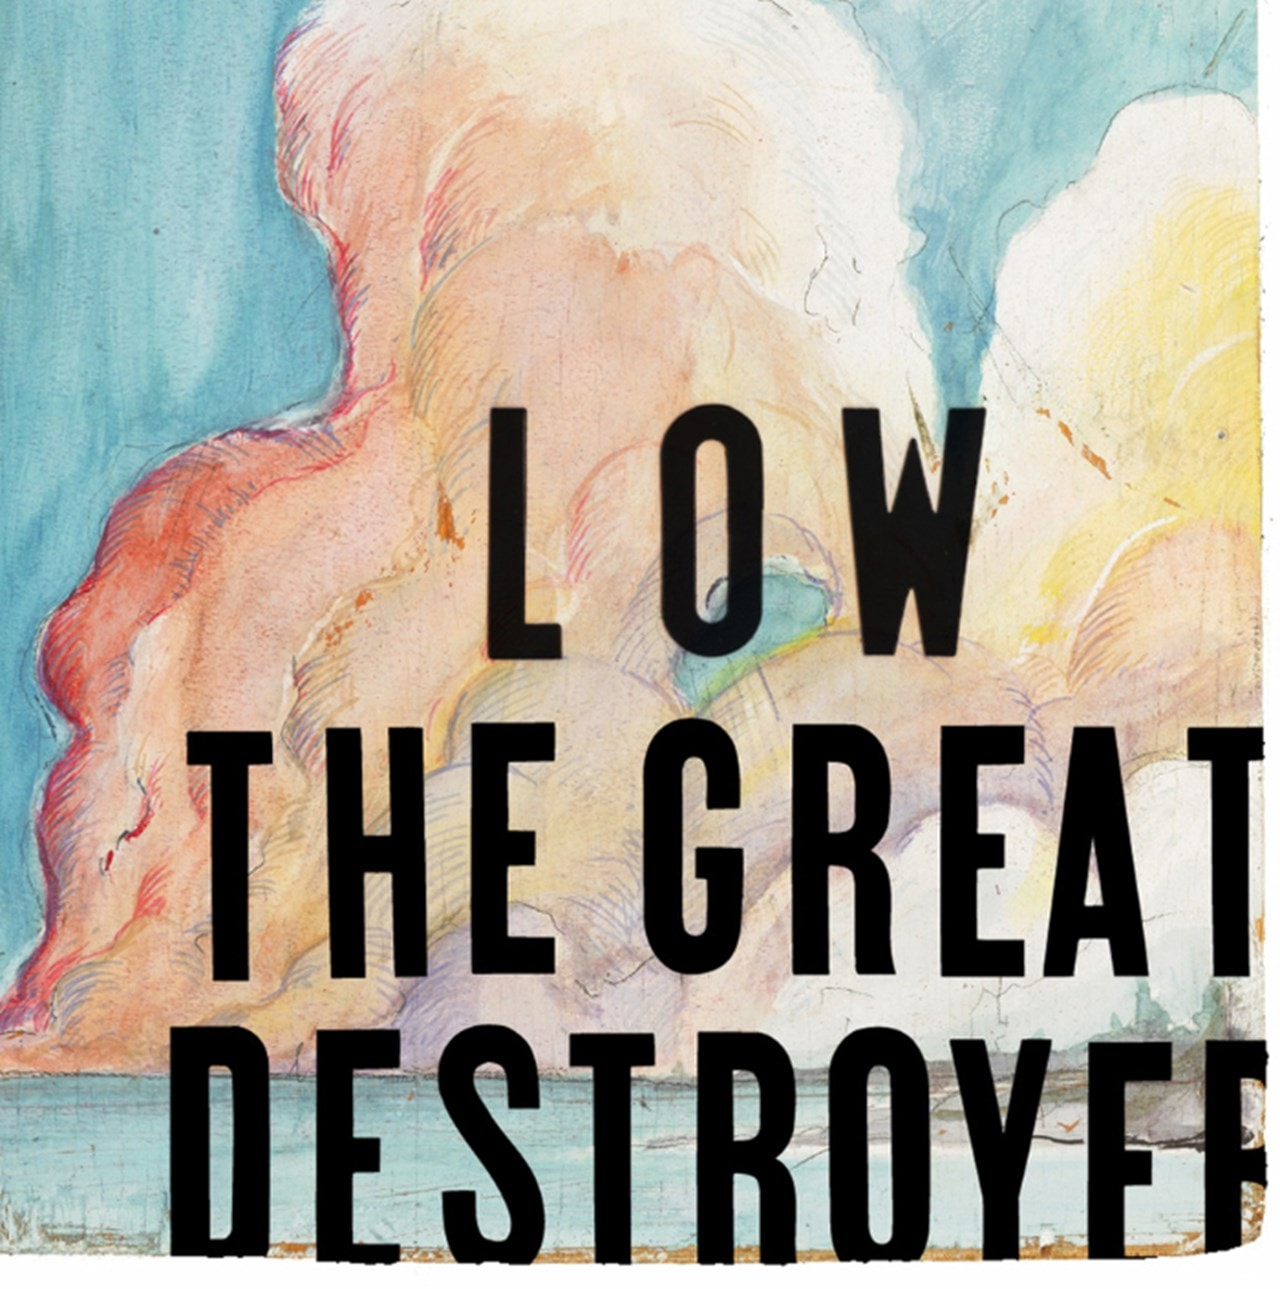 The Great Destroyer - 1